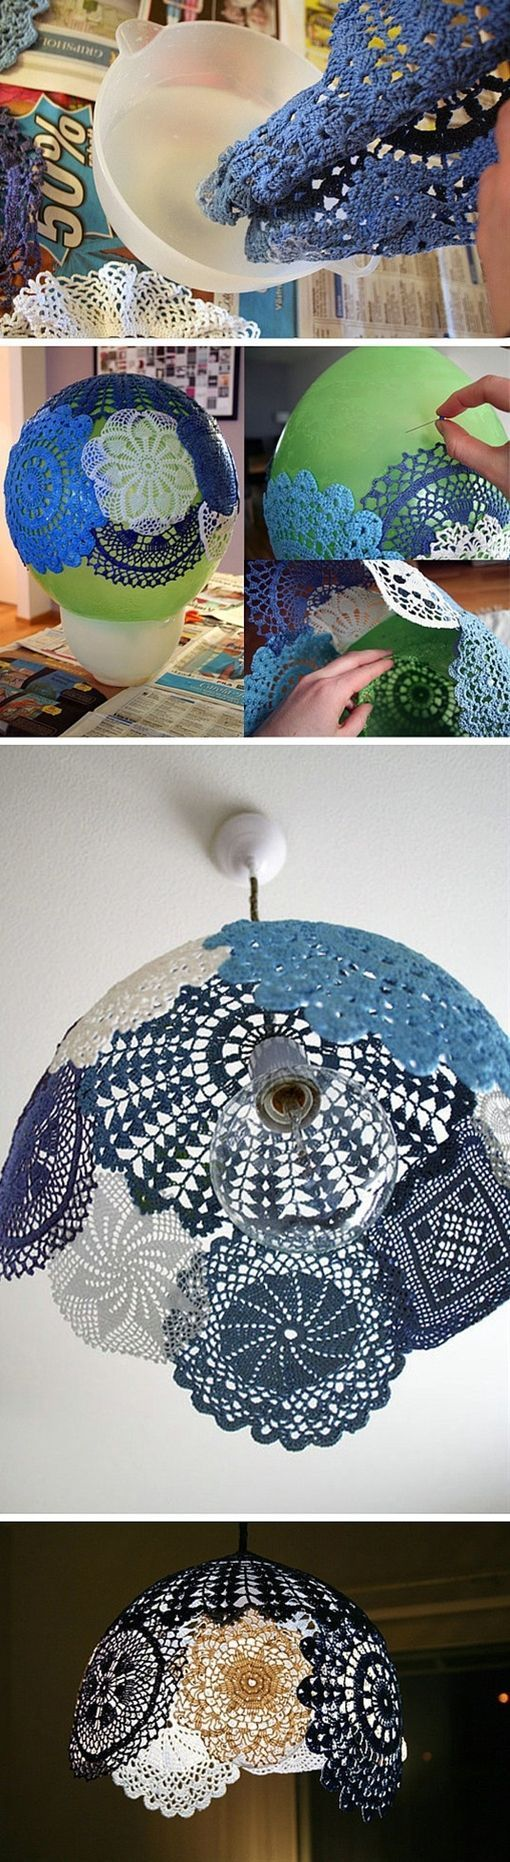 DIY Doily Chandeleir Pictures, Photos, and Images for Facebook, Tumblr, Pinterest, and Twitter